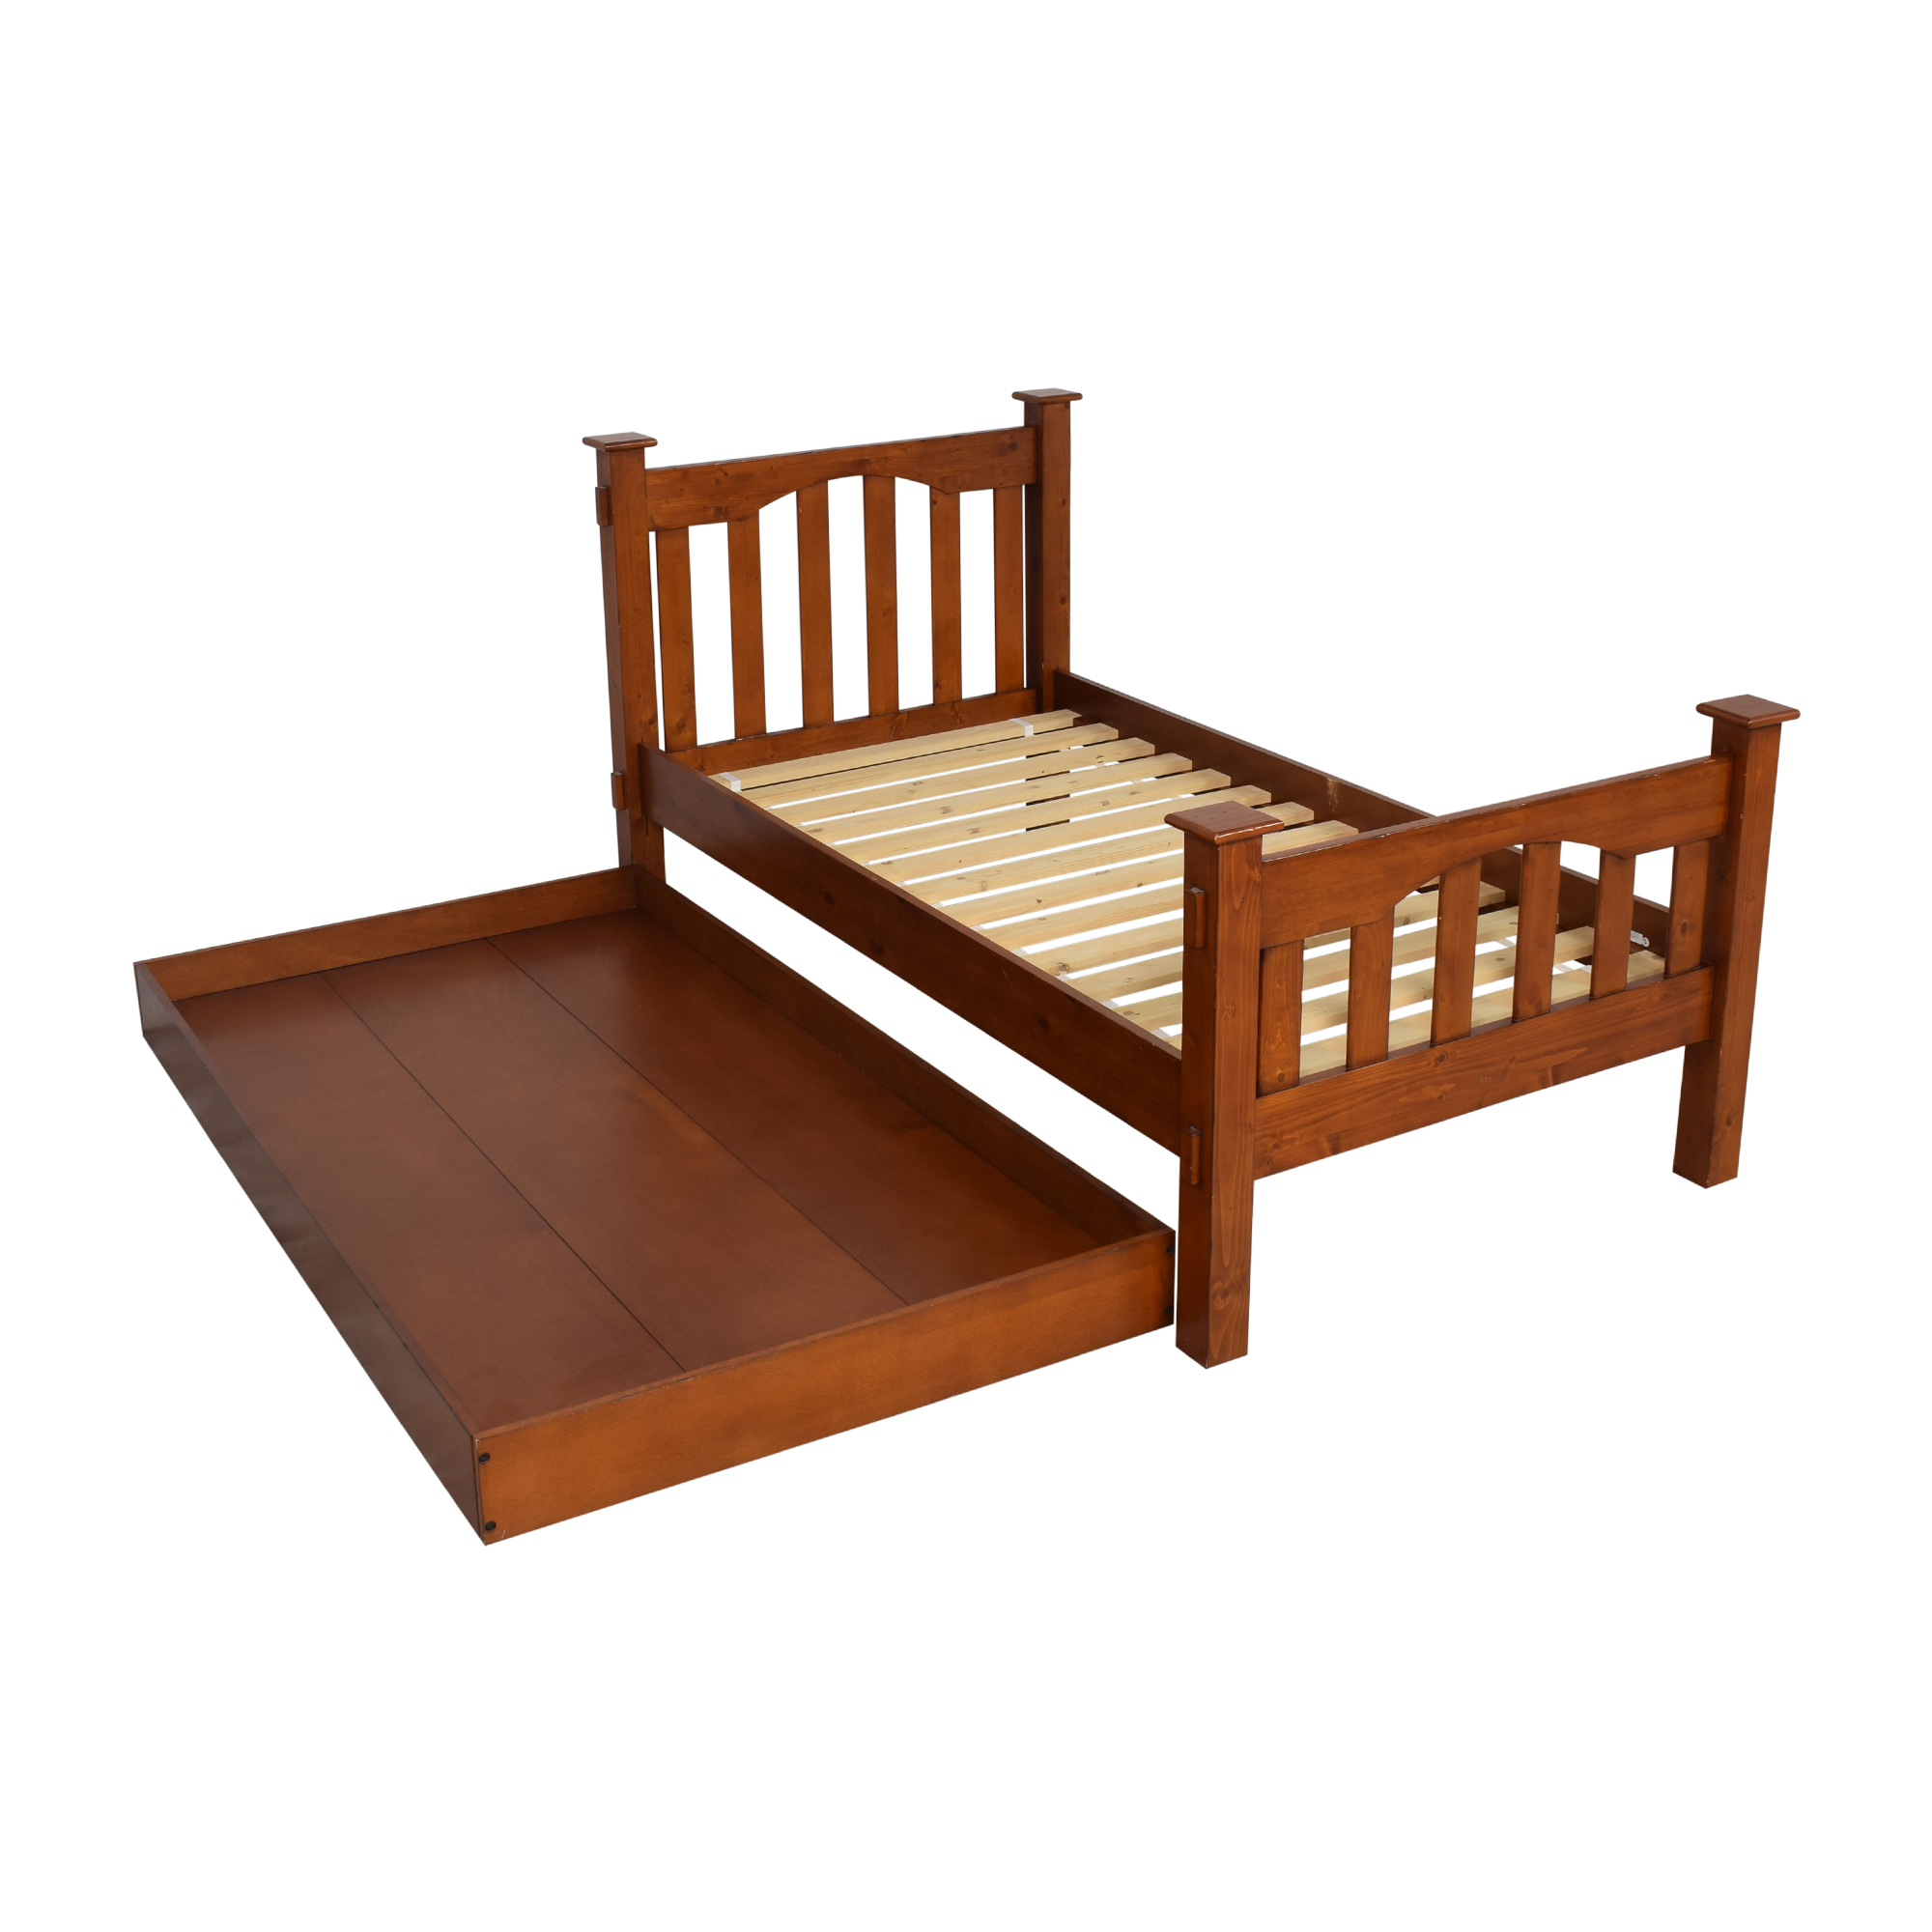 Pottery Barn Kids Pottery Barn Kids Kendall Twin Bed and Trundle ct